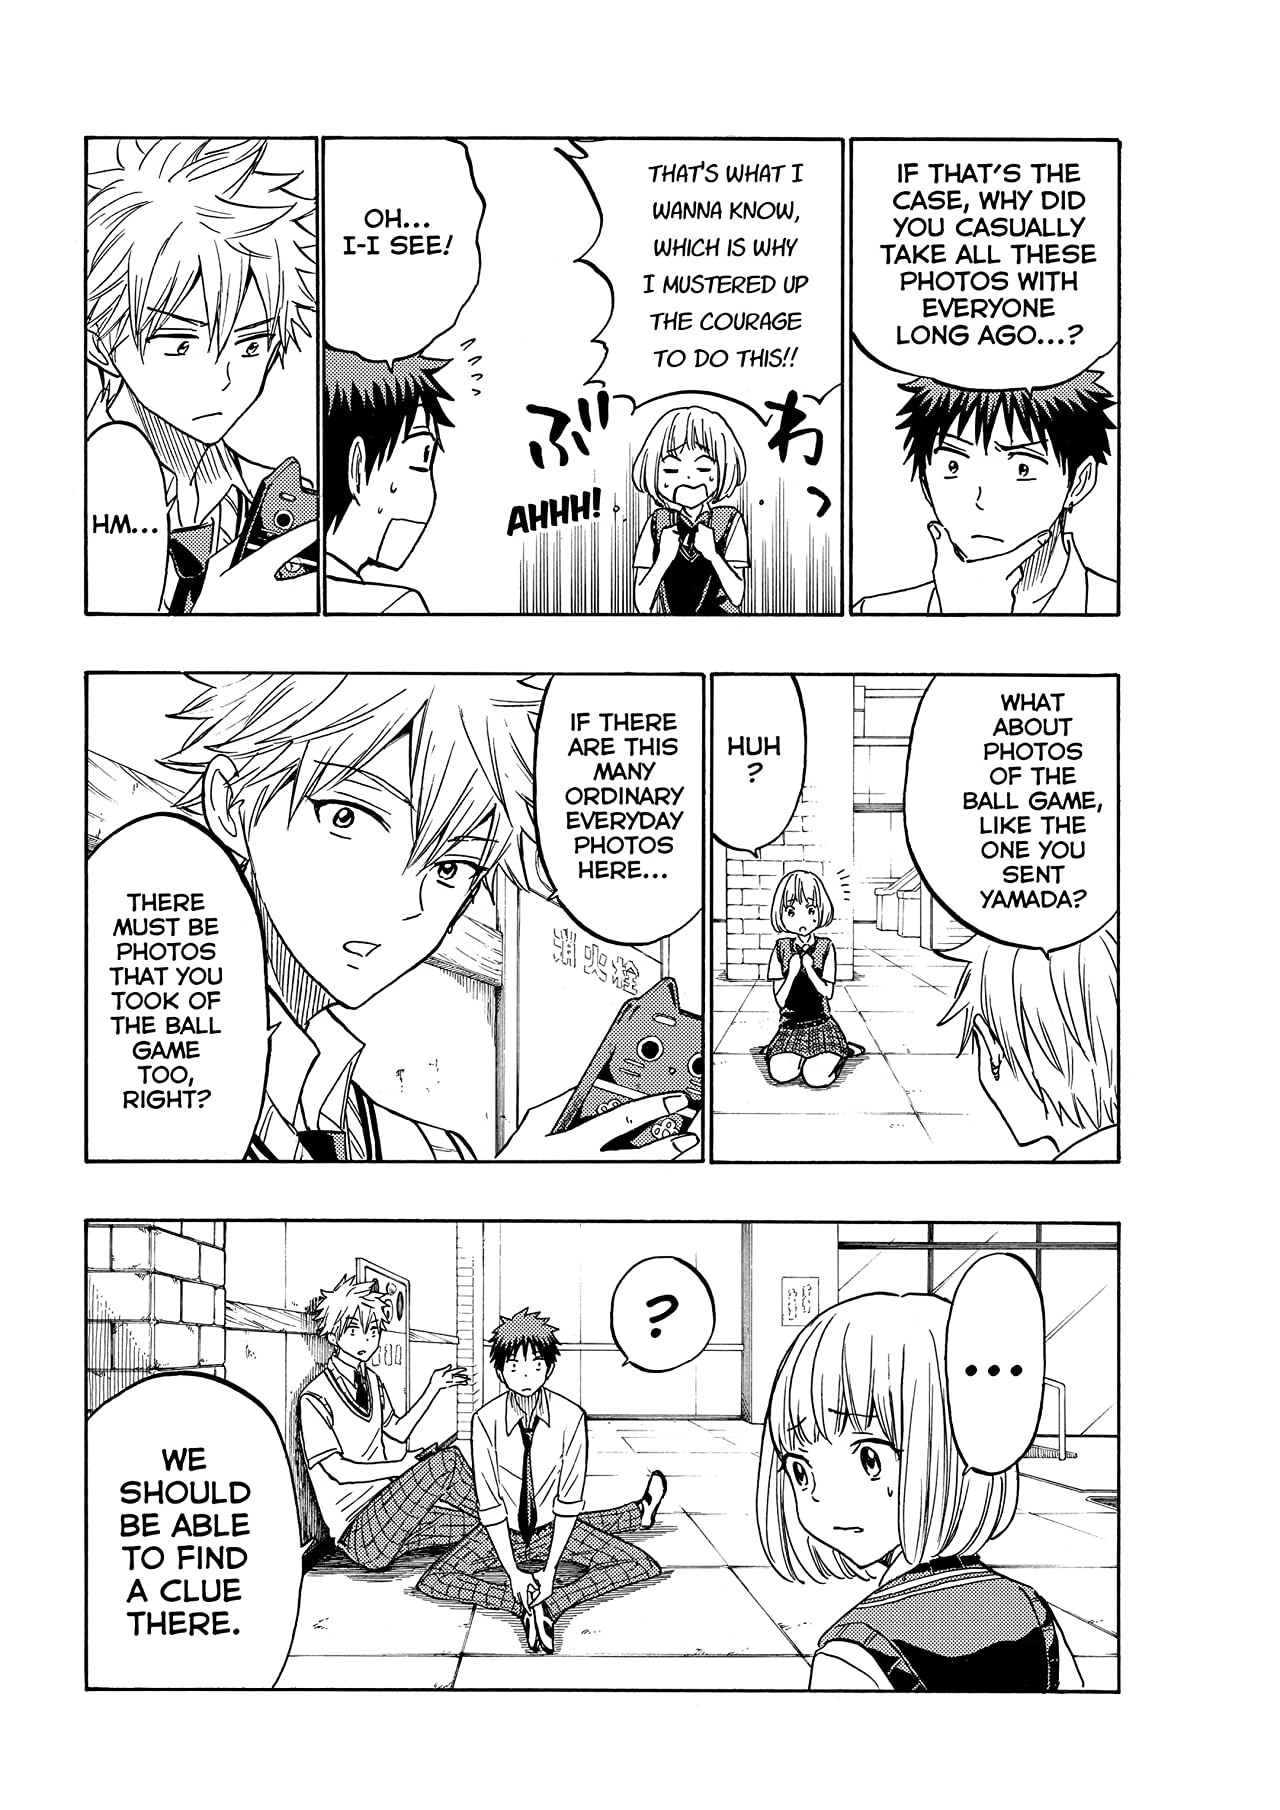 Yamada-kun and the Seven Witches #209